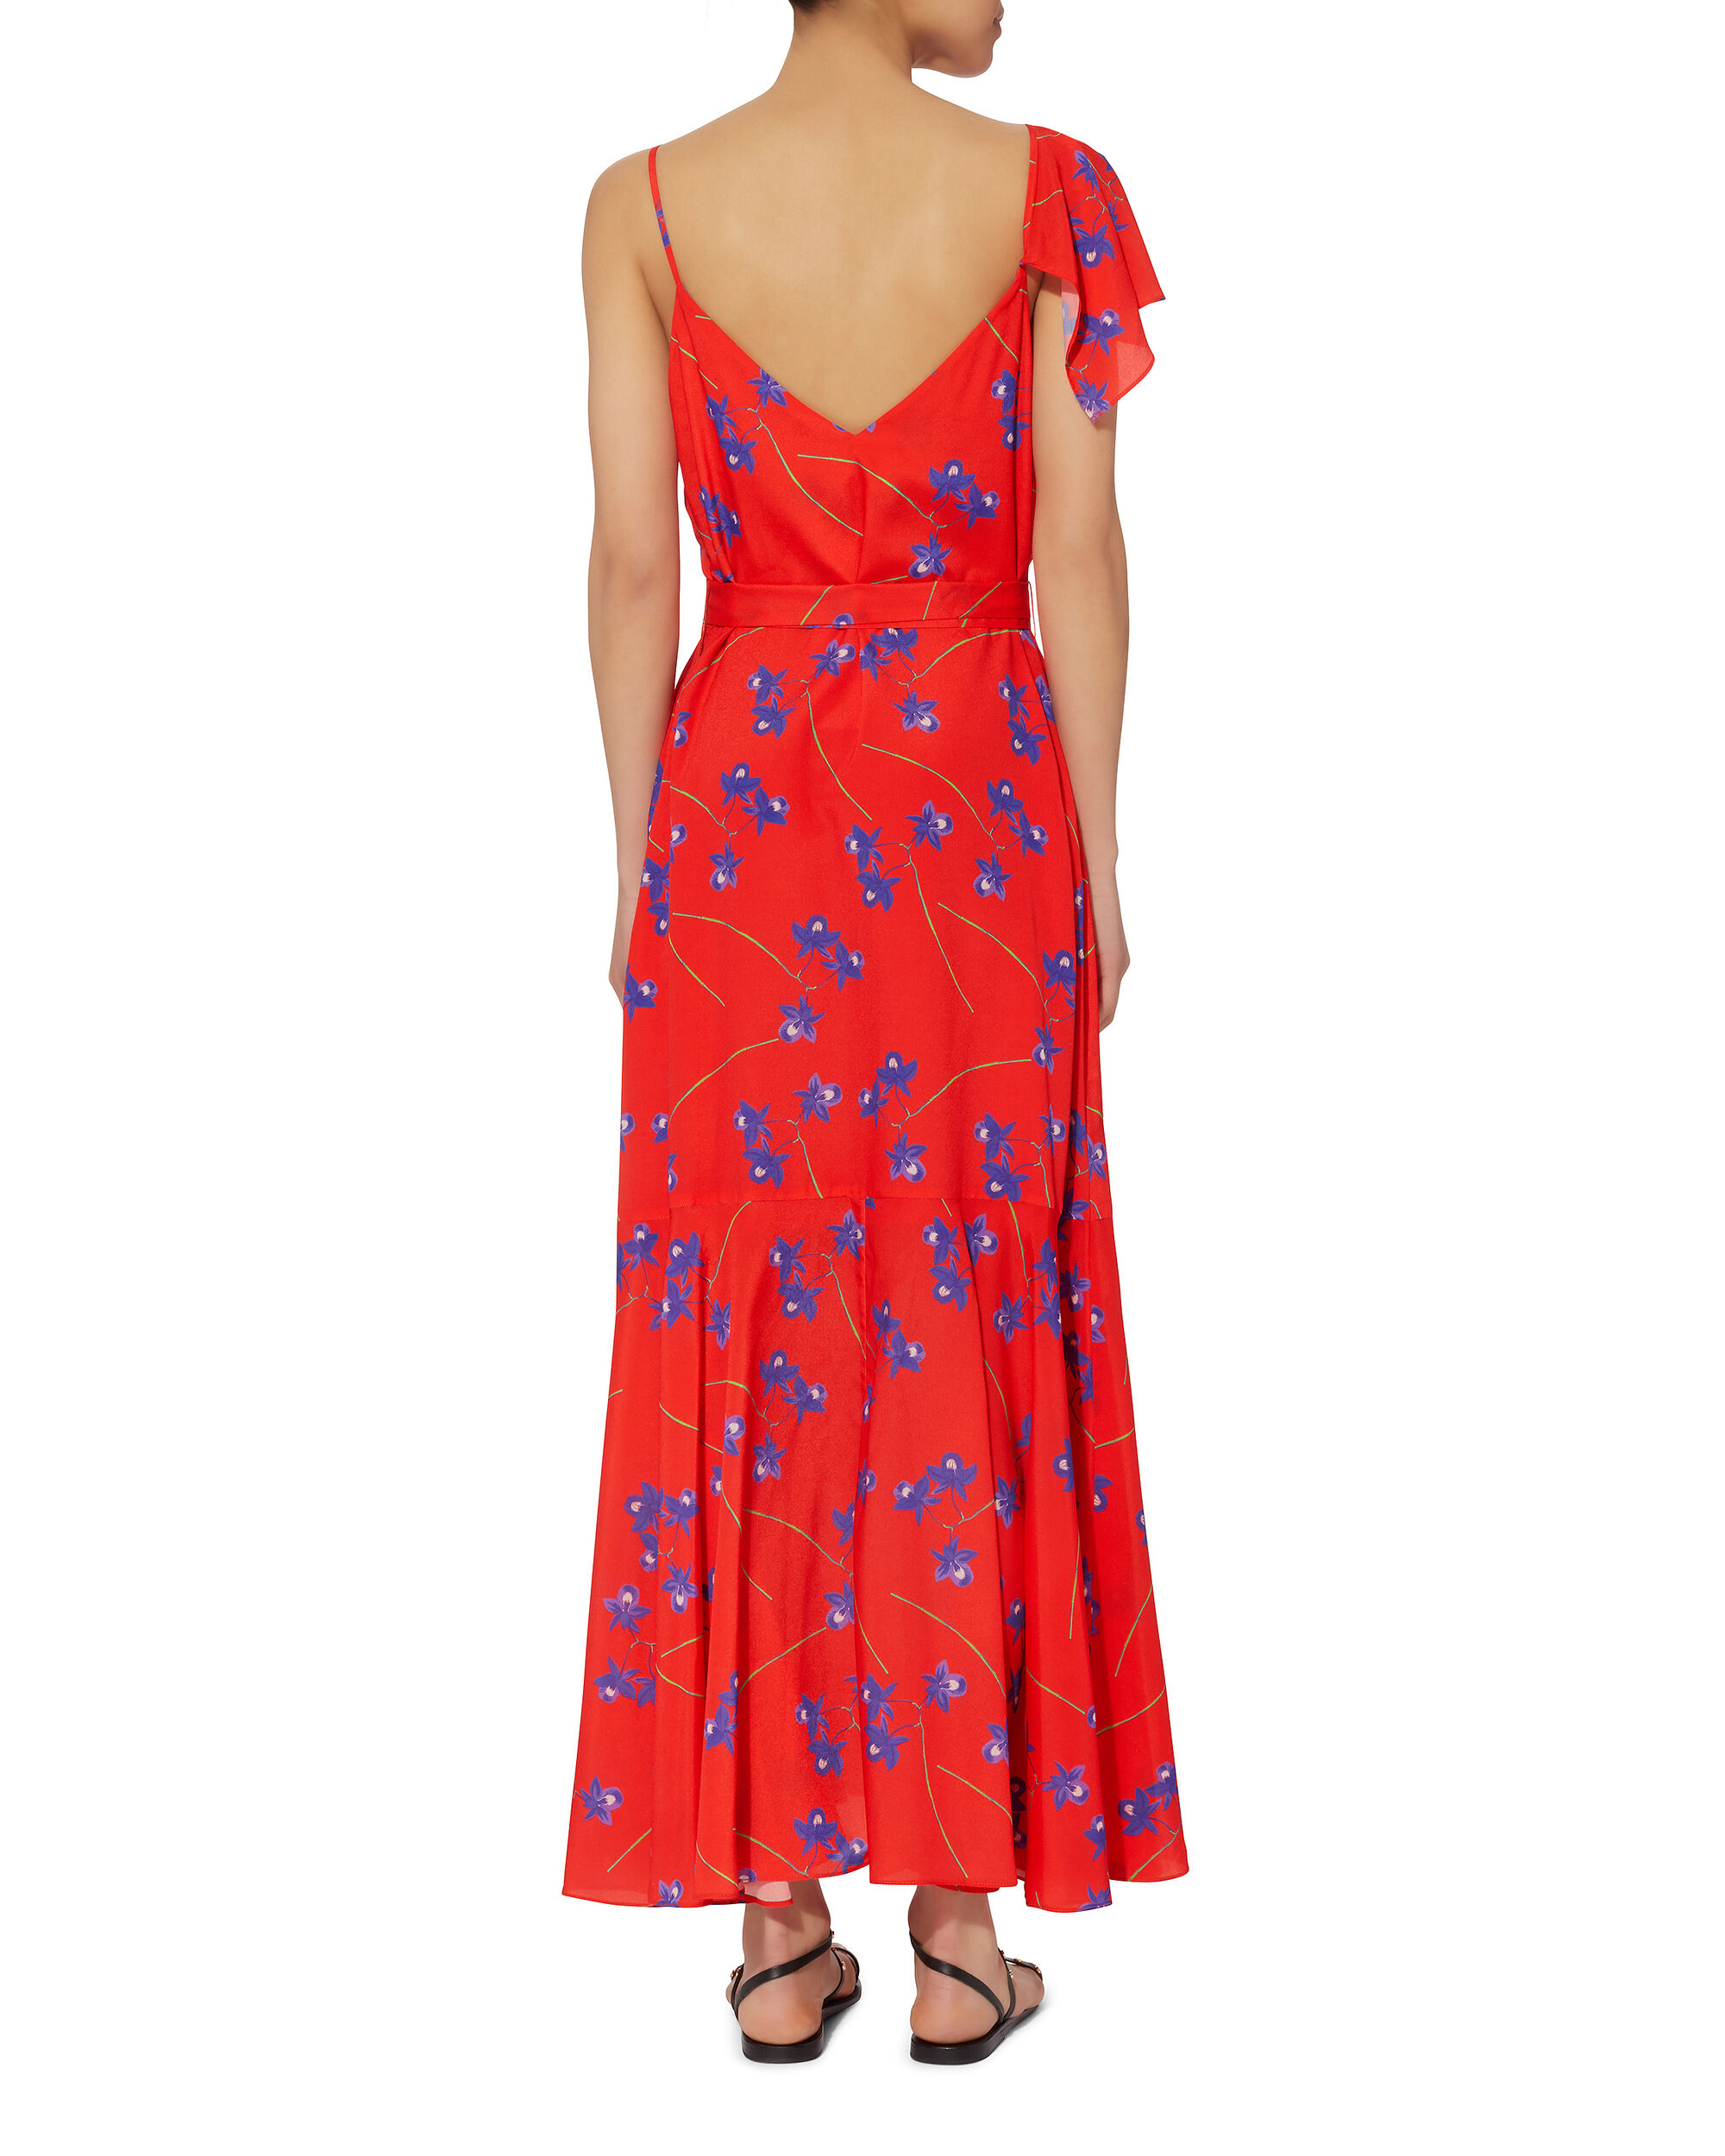 Isadora Ruffle Wrap Slip Dress, PRINT, hi-res